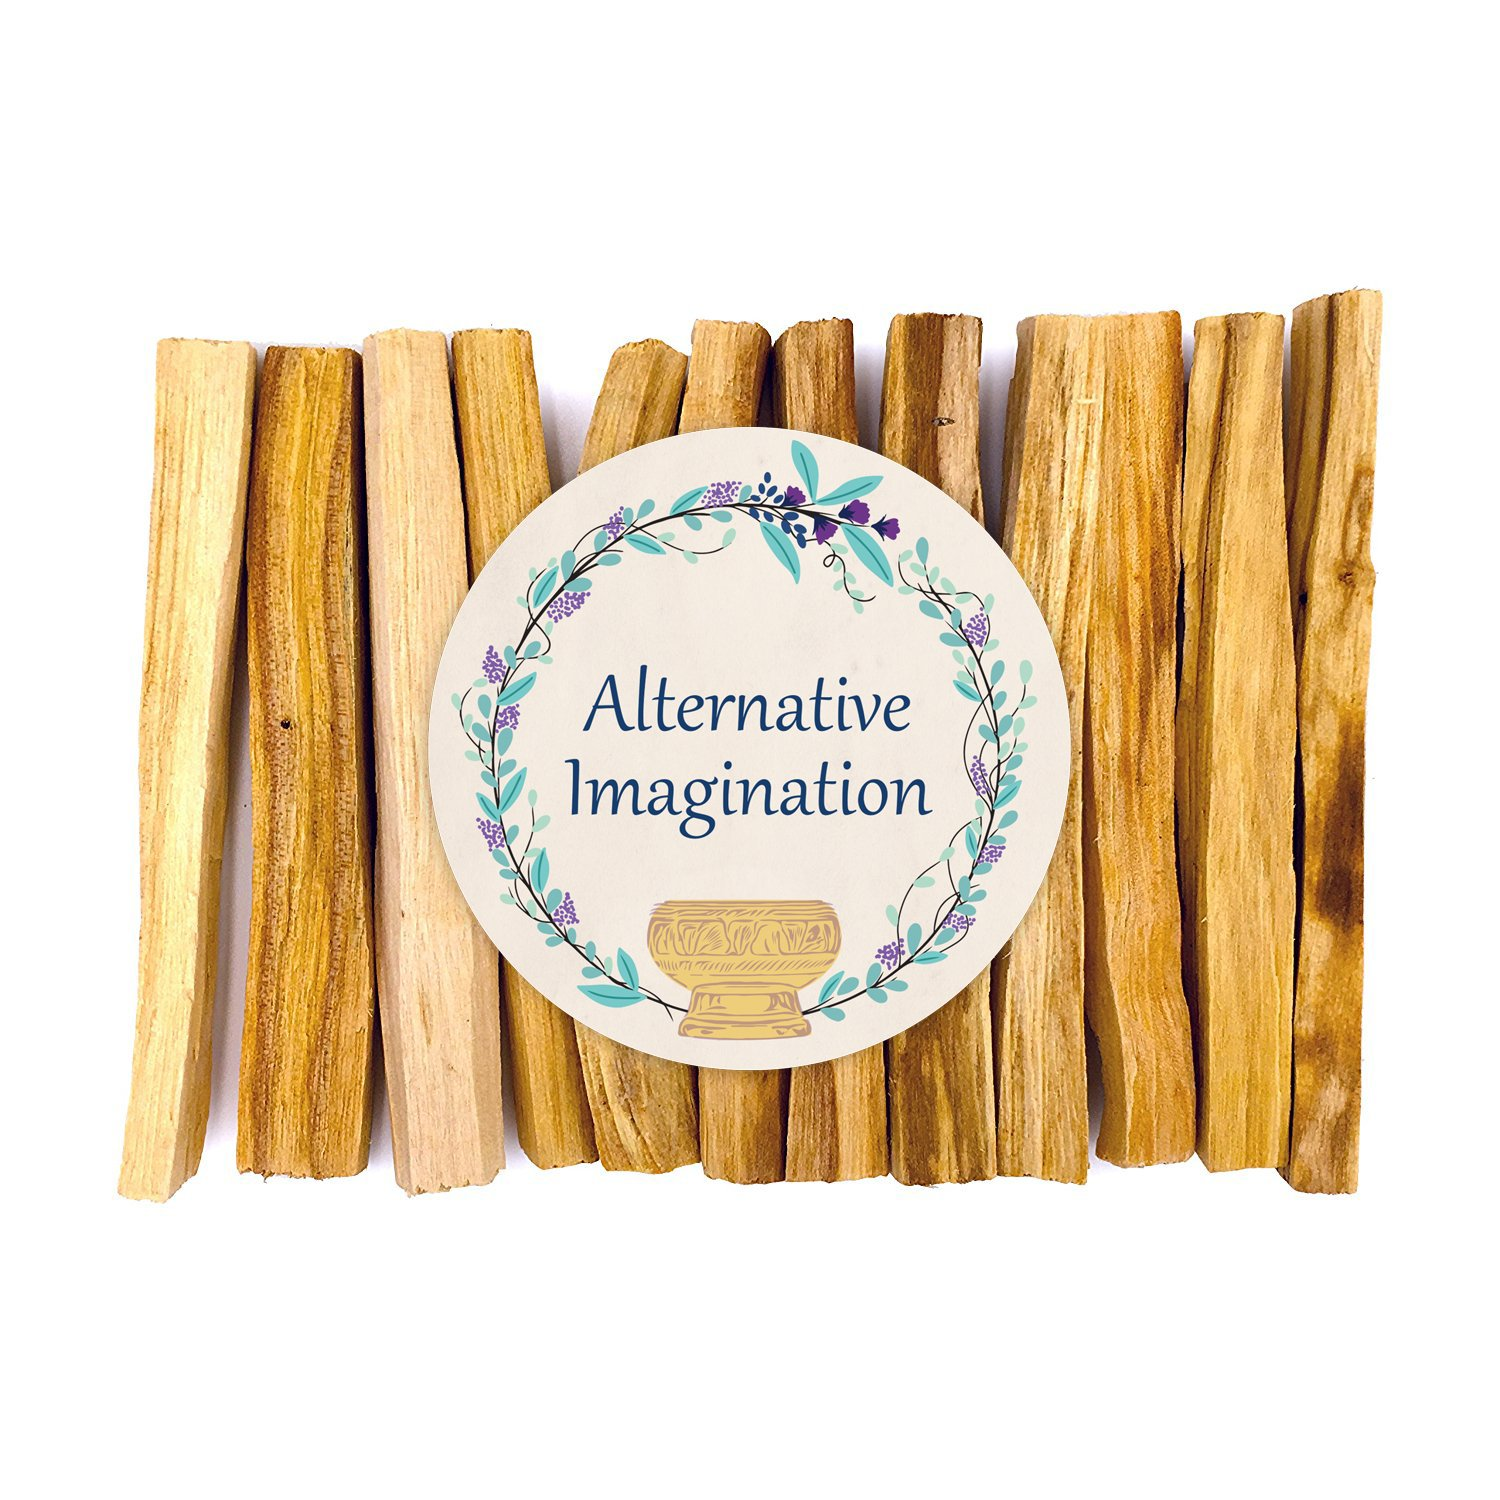 Alternative Imagination Premium Palo Santo Holy Wood Incense Sticks Purifying, Cleansing, Healing, Meditating, Stress Relief. 100% Natural Sustainable, Wild Harvested. (12)